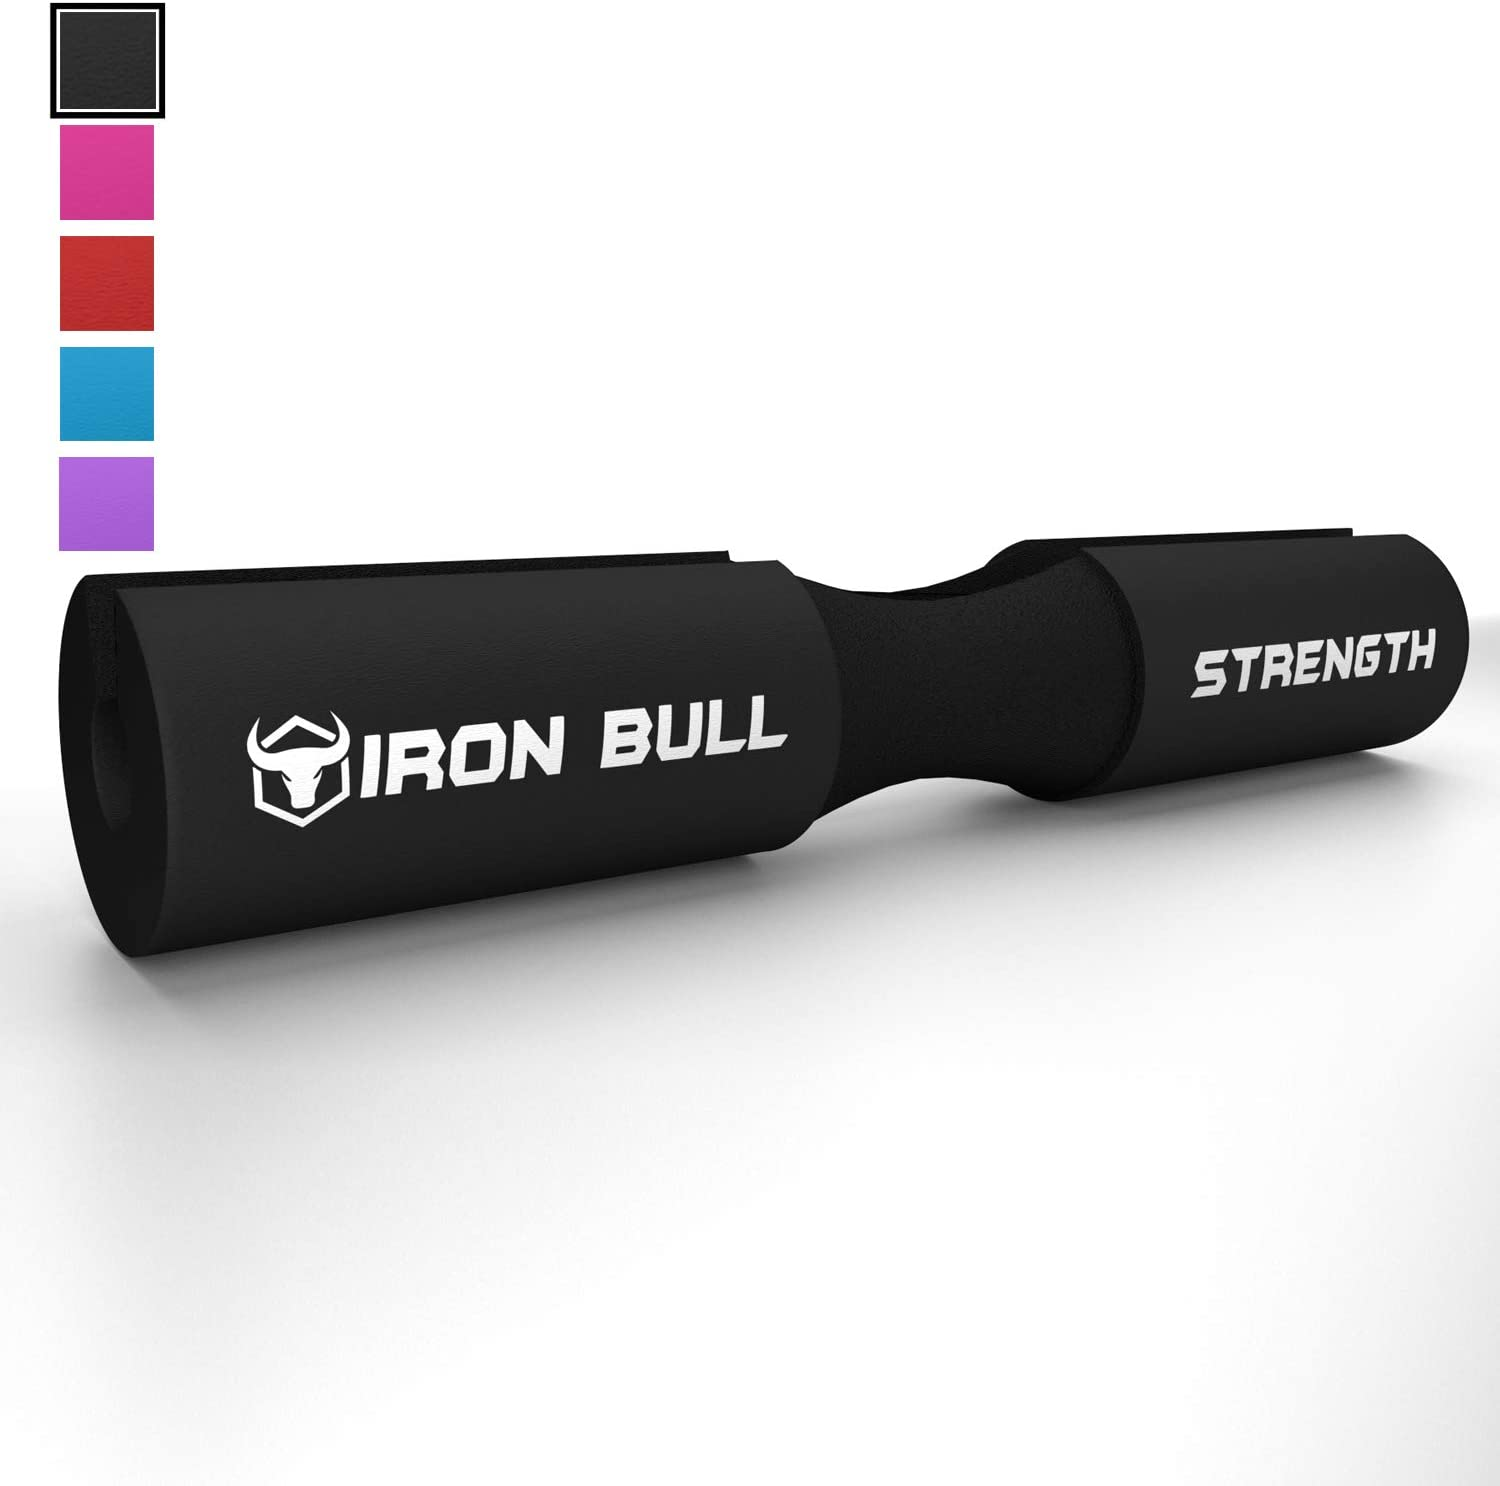 Iron Bull Strength Advanced Squat Pad - Barbell Pad for Squats, Lunges & Hip Thrusts - Neck & Shoulder Protective Pad Support (Black) : Garden & Outdoor